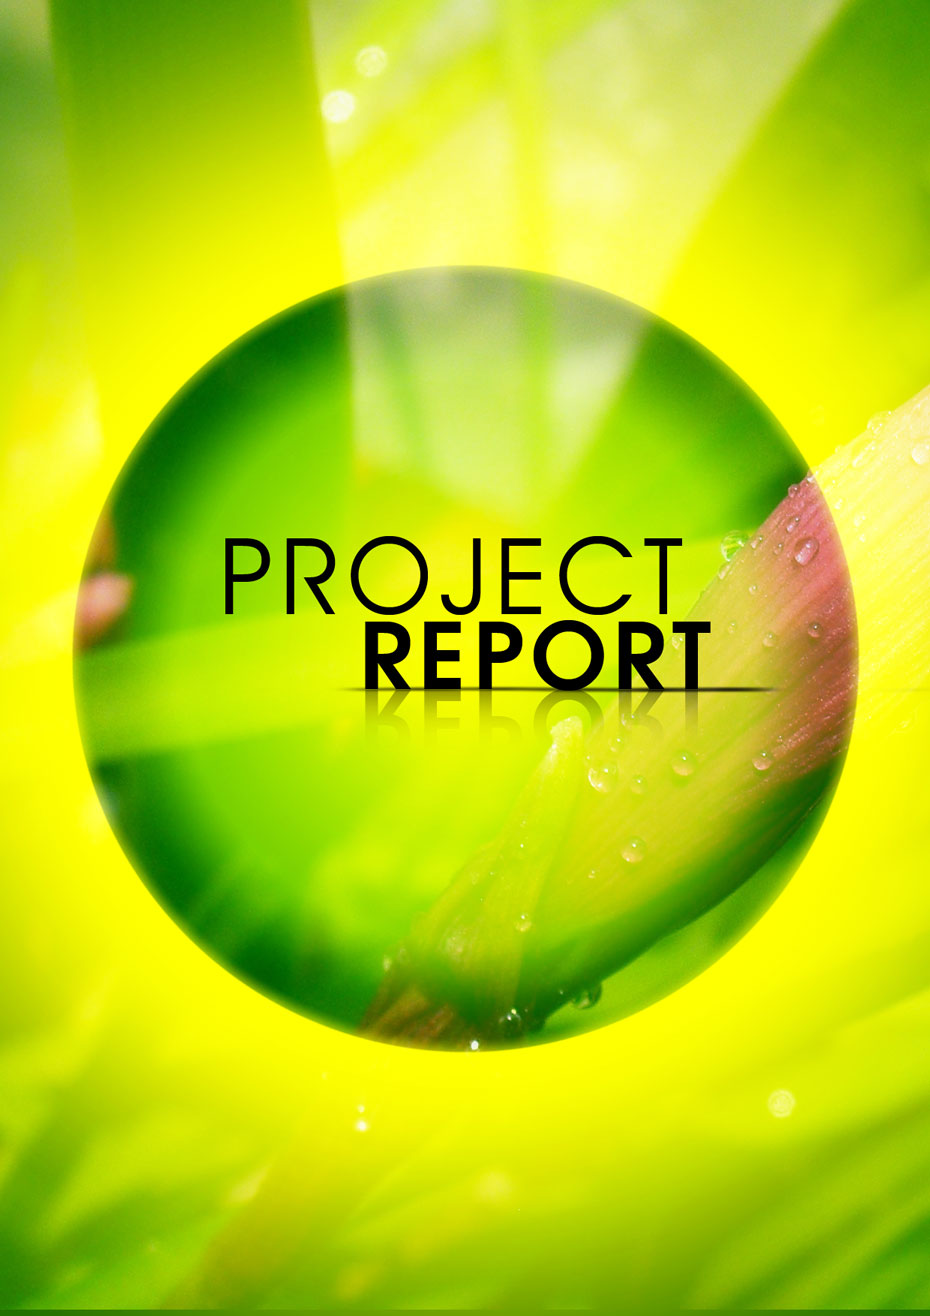 cover page design for project report